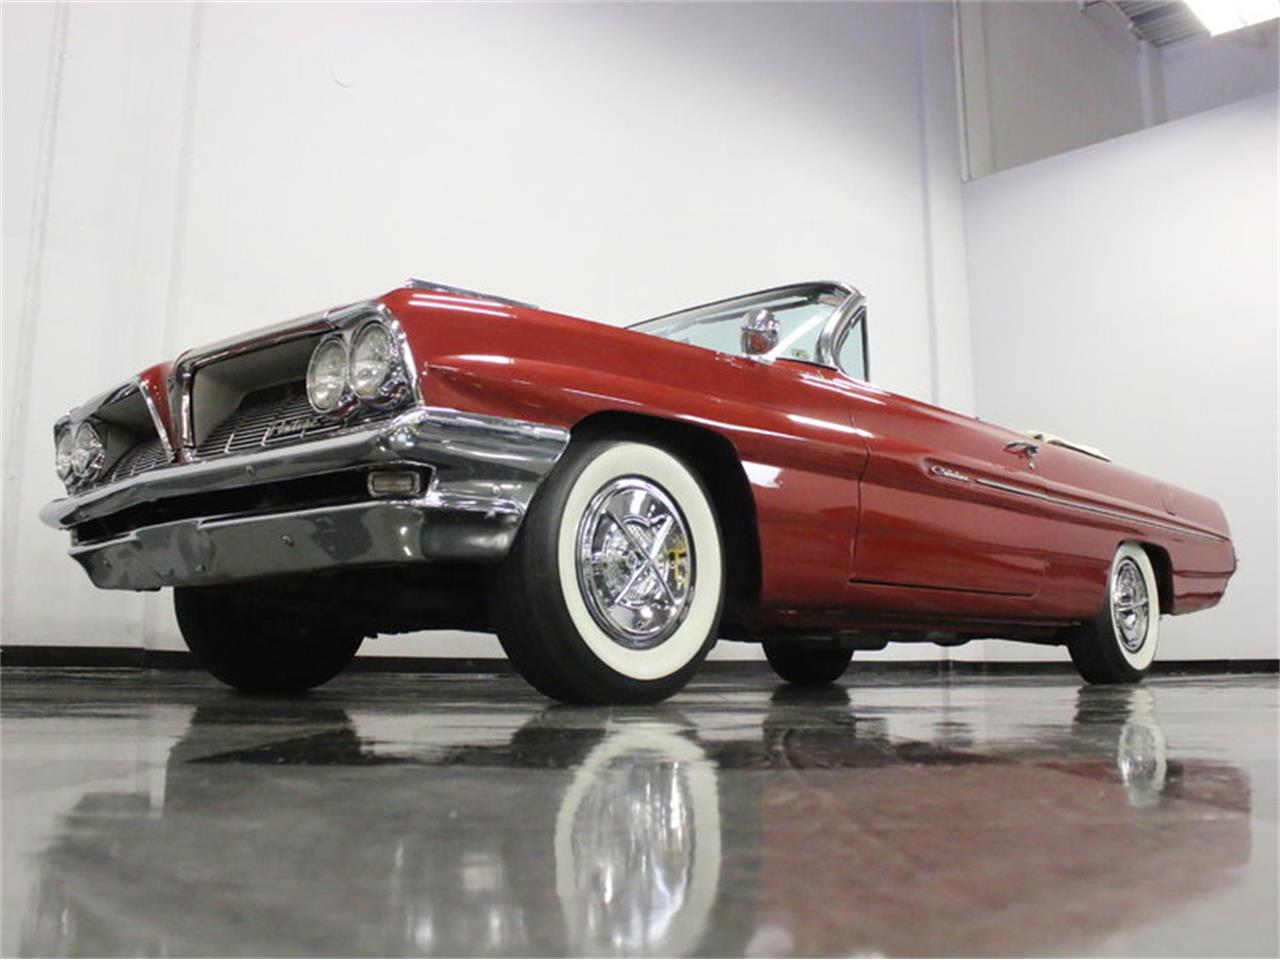 Large Picture of Classic '61 Pontiac Catalina located in Ft Worth Texas - $31,995.00 Offered by Streetside Classics - Dallas / Fort Worth - L8IM